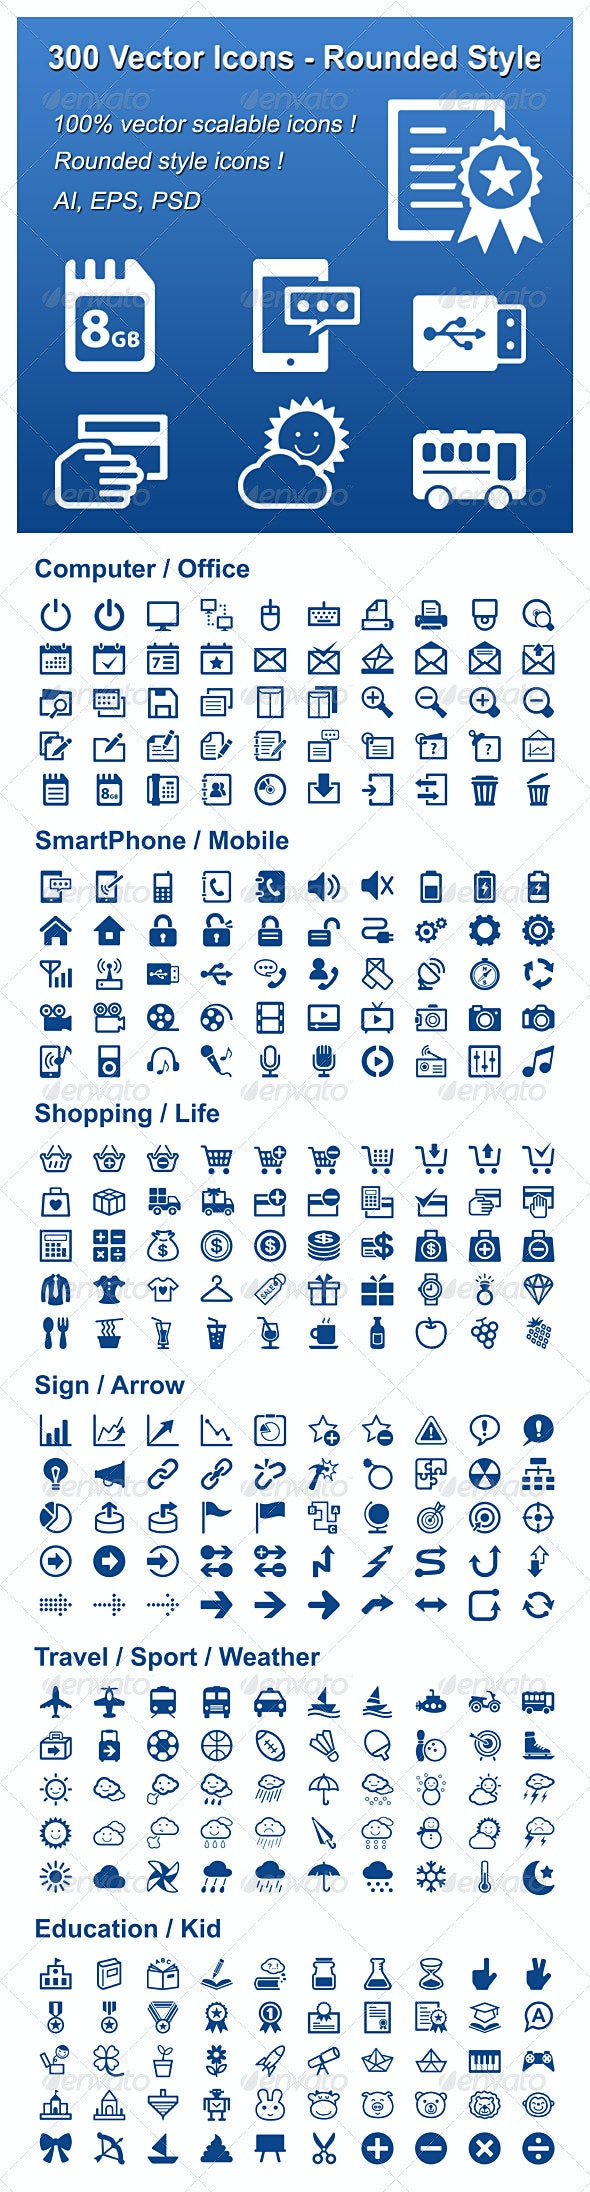 300 Vector Icons - Rounded Style - Web Icons